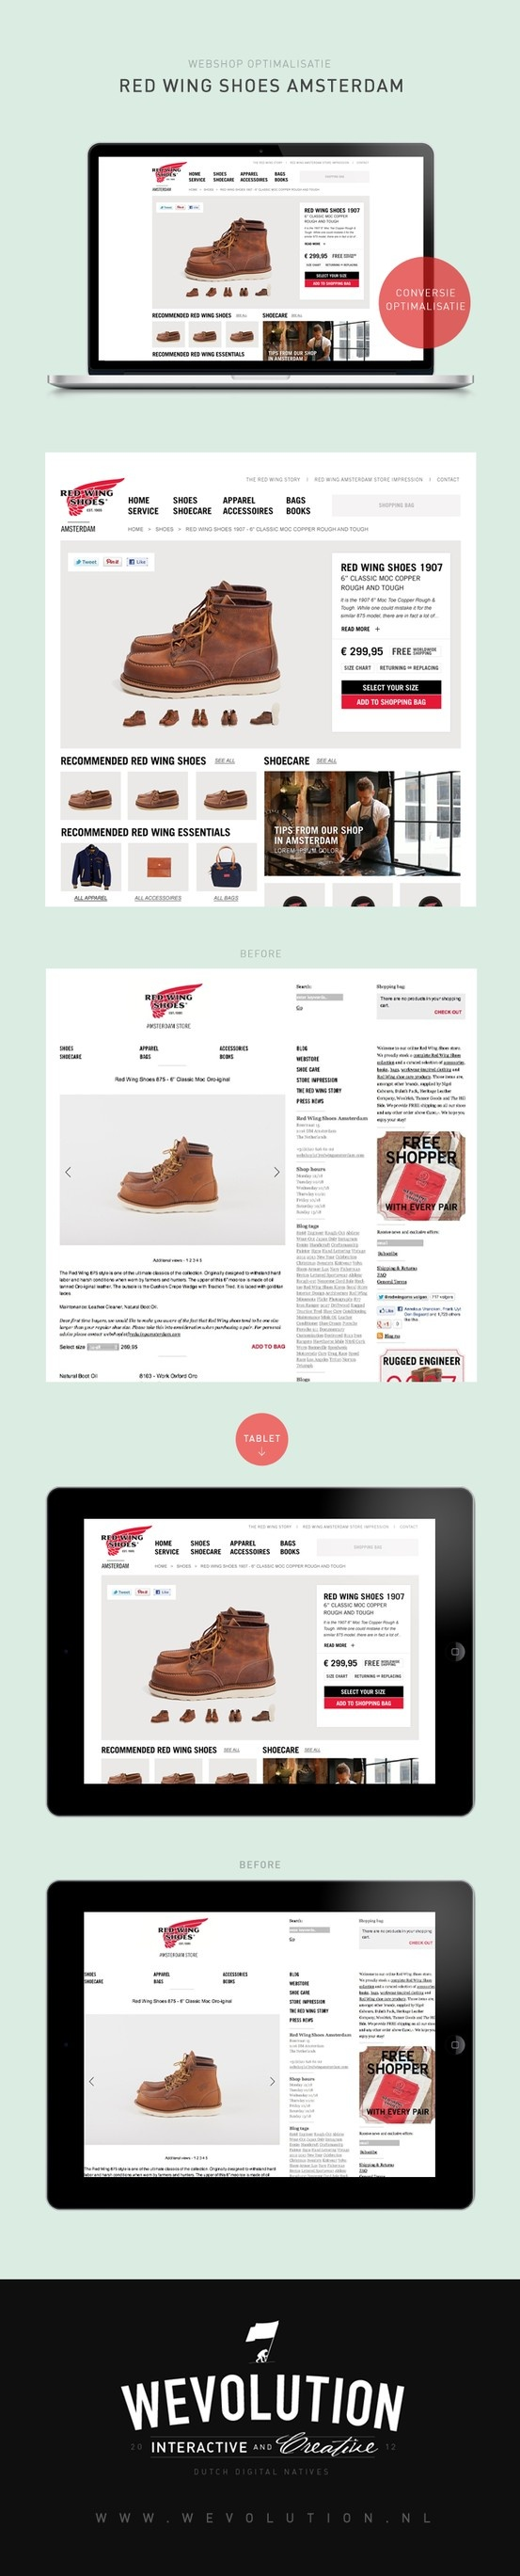 Red Wing Amsterdam product page redesign proposal | Wevolution #ecommerce #webshop #ux